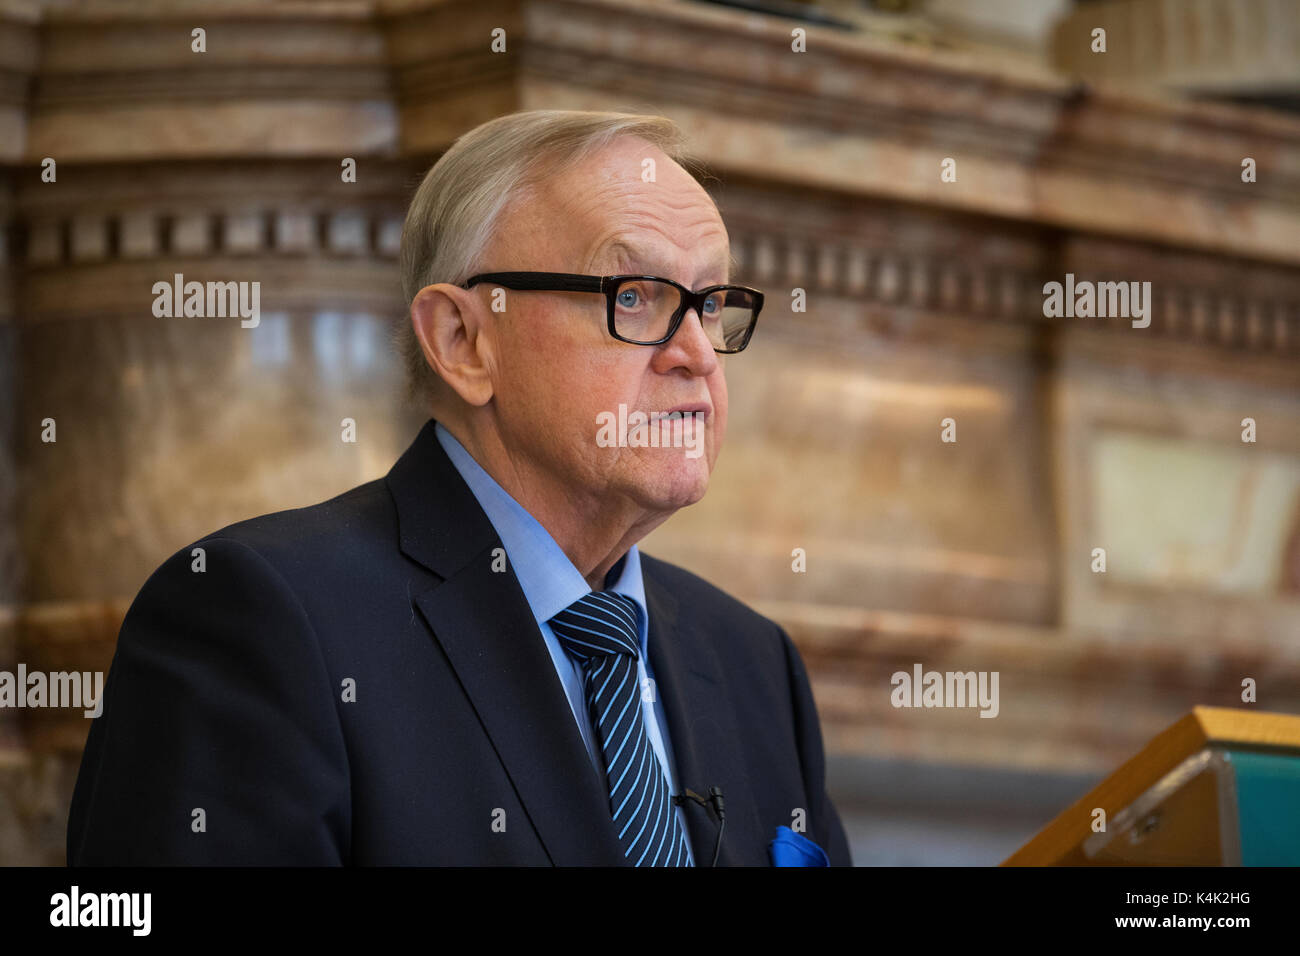 Dublin, Ireland. 6th Sep, 2017. Former President of Finland and Nobel Laureate, Mr. Martti Ahtisaari was in Ireland Stock Photo